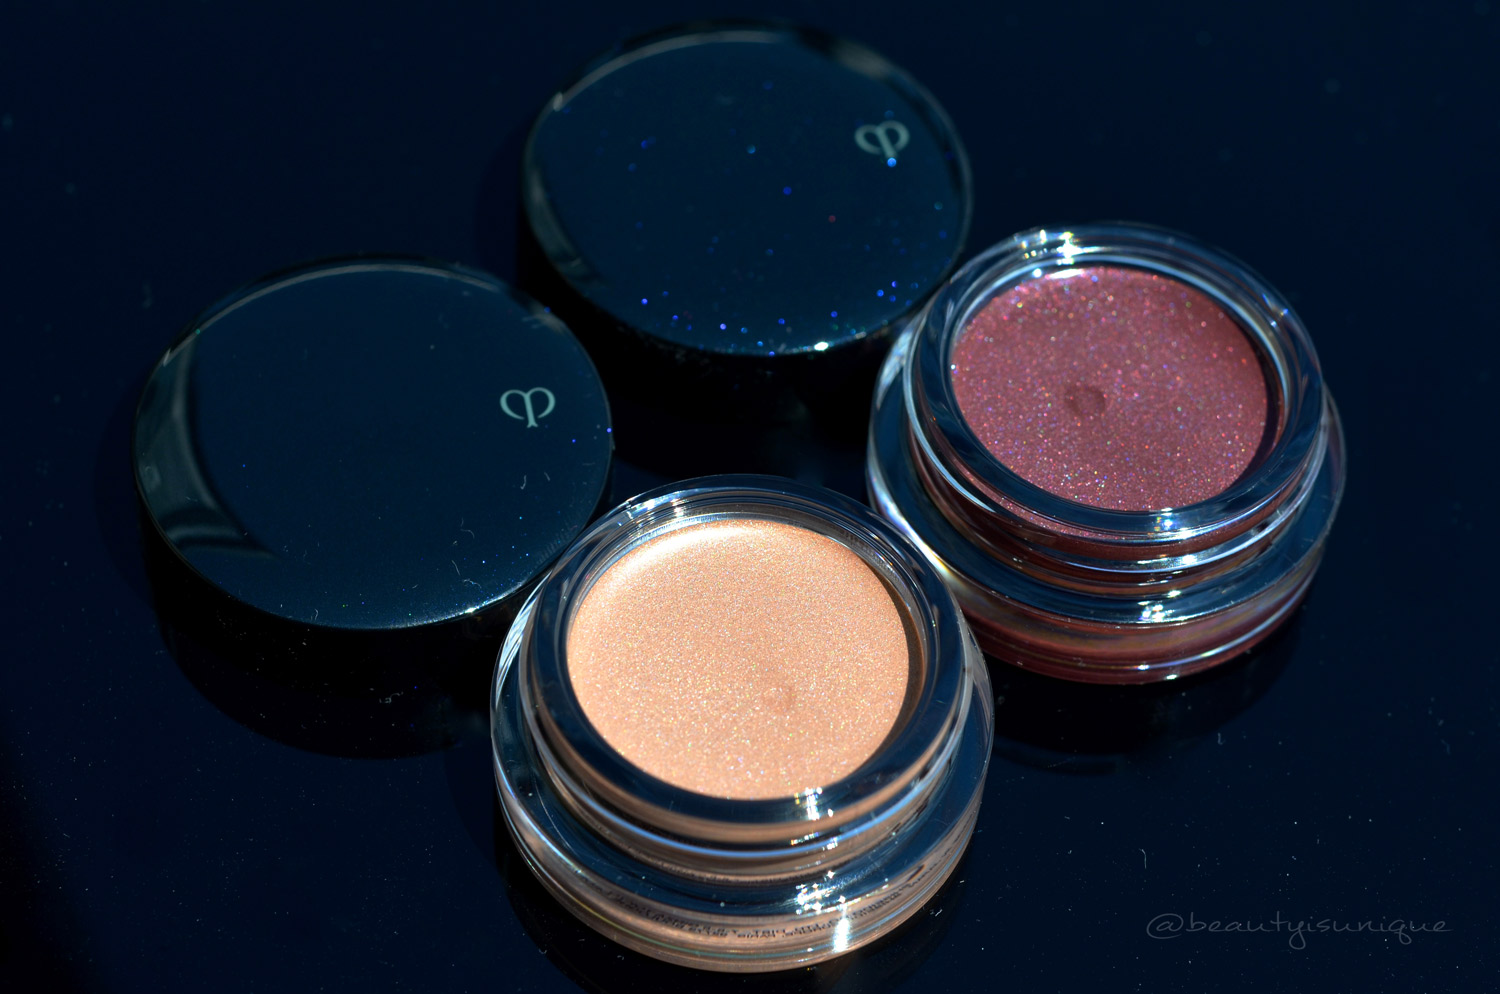 Cle-de-peau-creme-eye-color